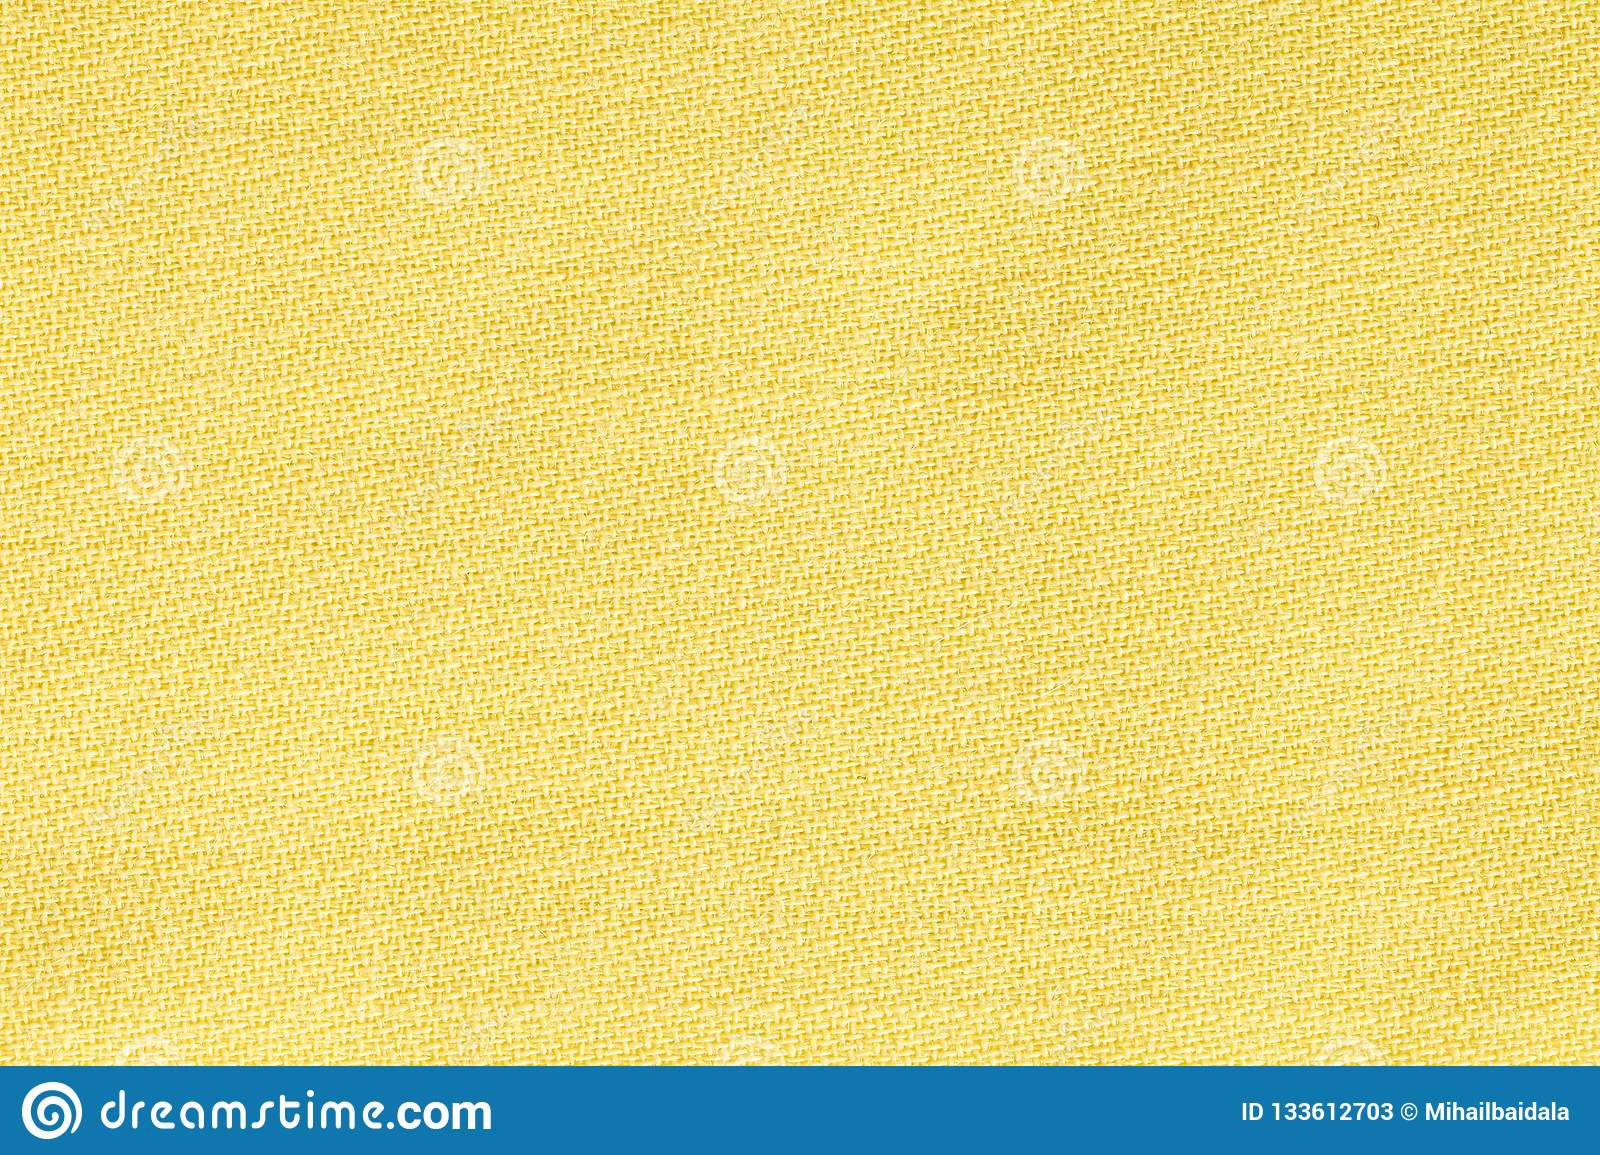 Linen Background Texture Free Stock Photos Download 9 467: Yellow Linen Fabric Of Cloth Texture Background. Detail Of